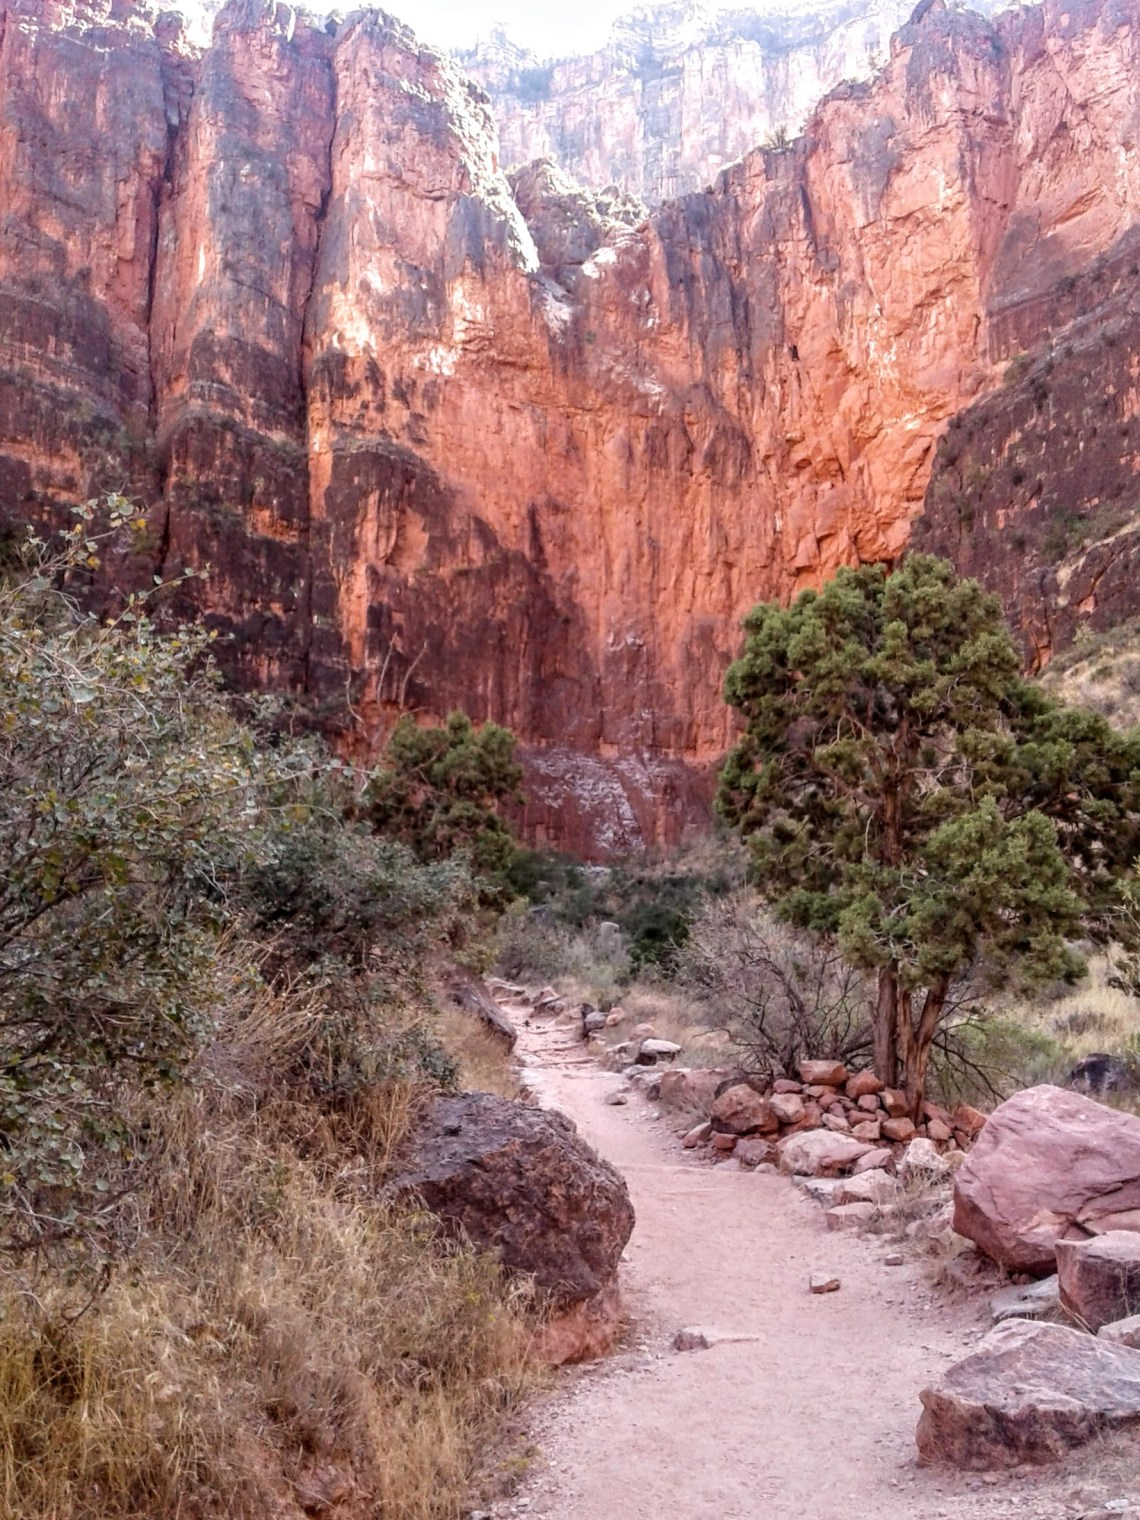 hiking trail leads toward red canyon walls in distance